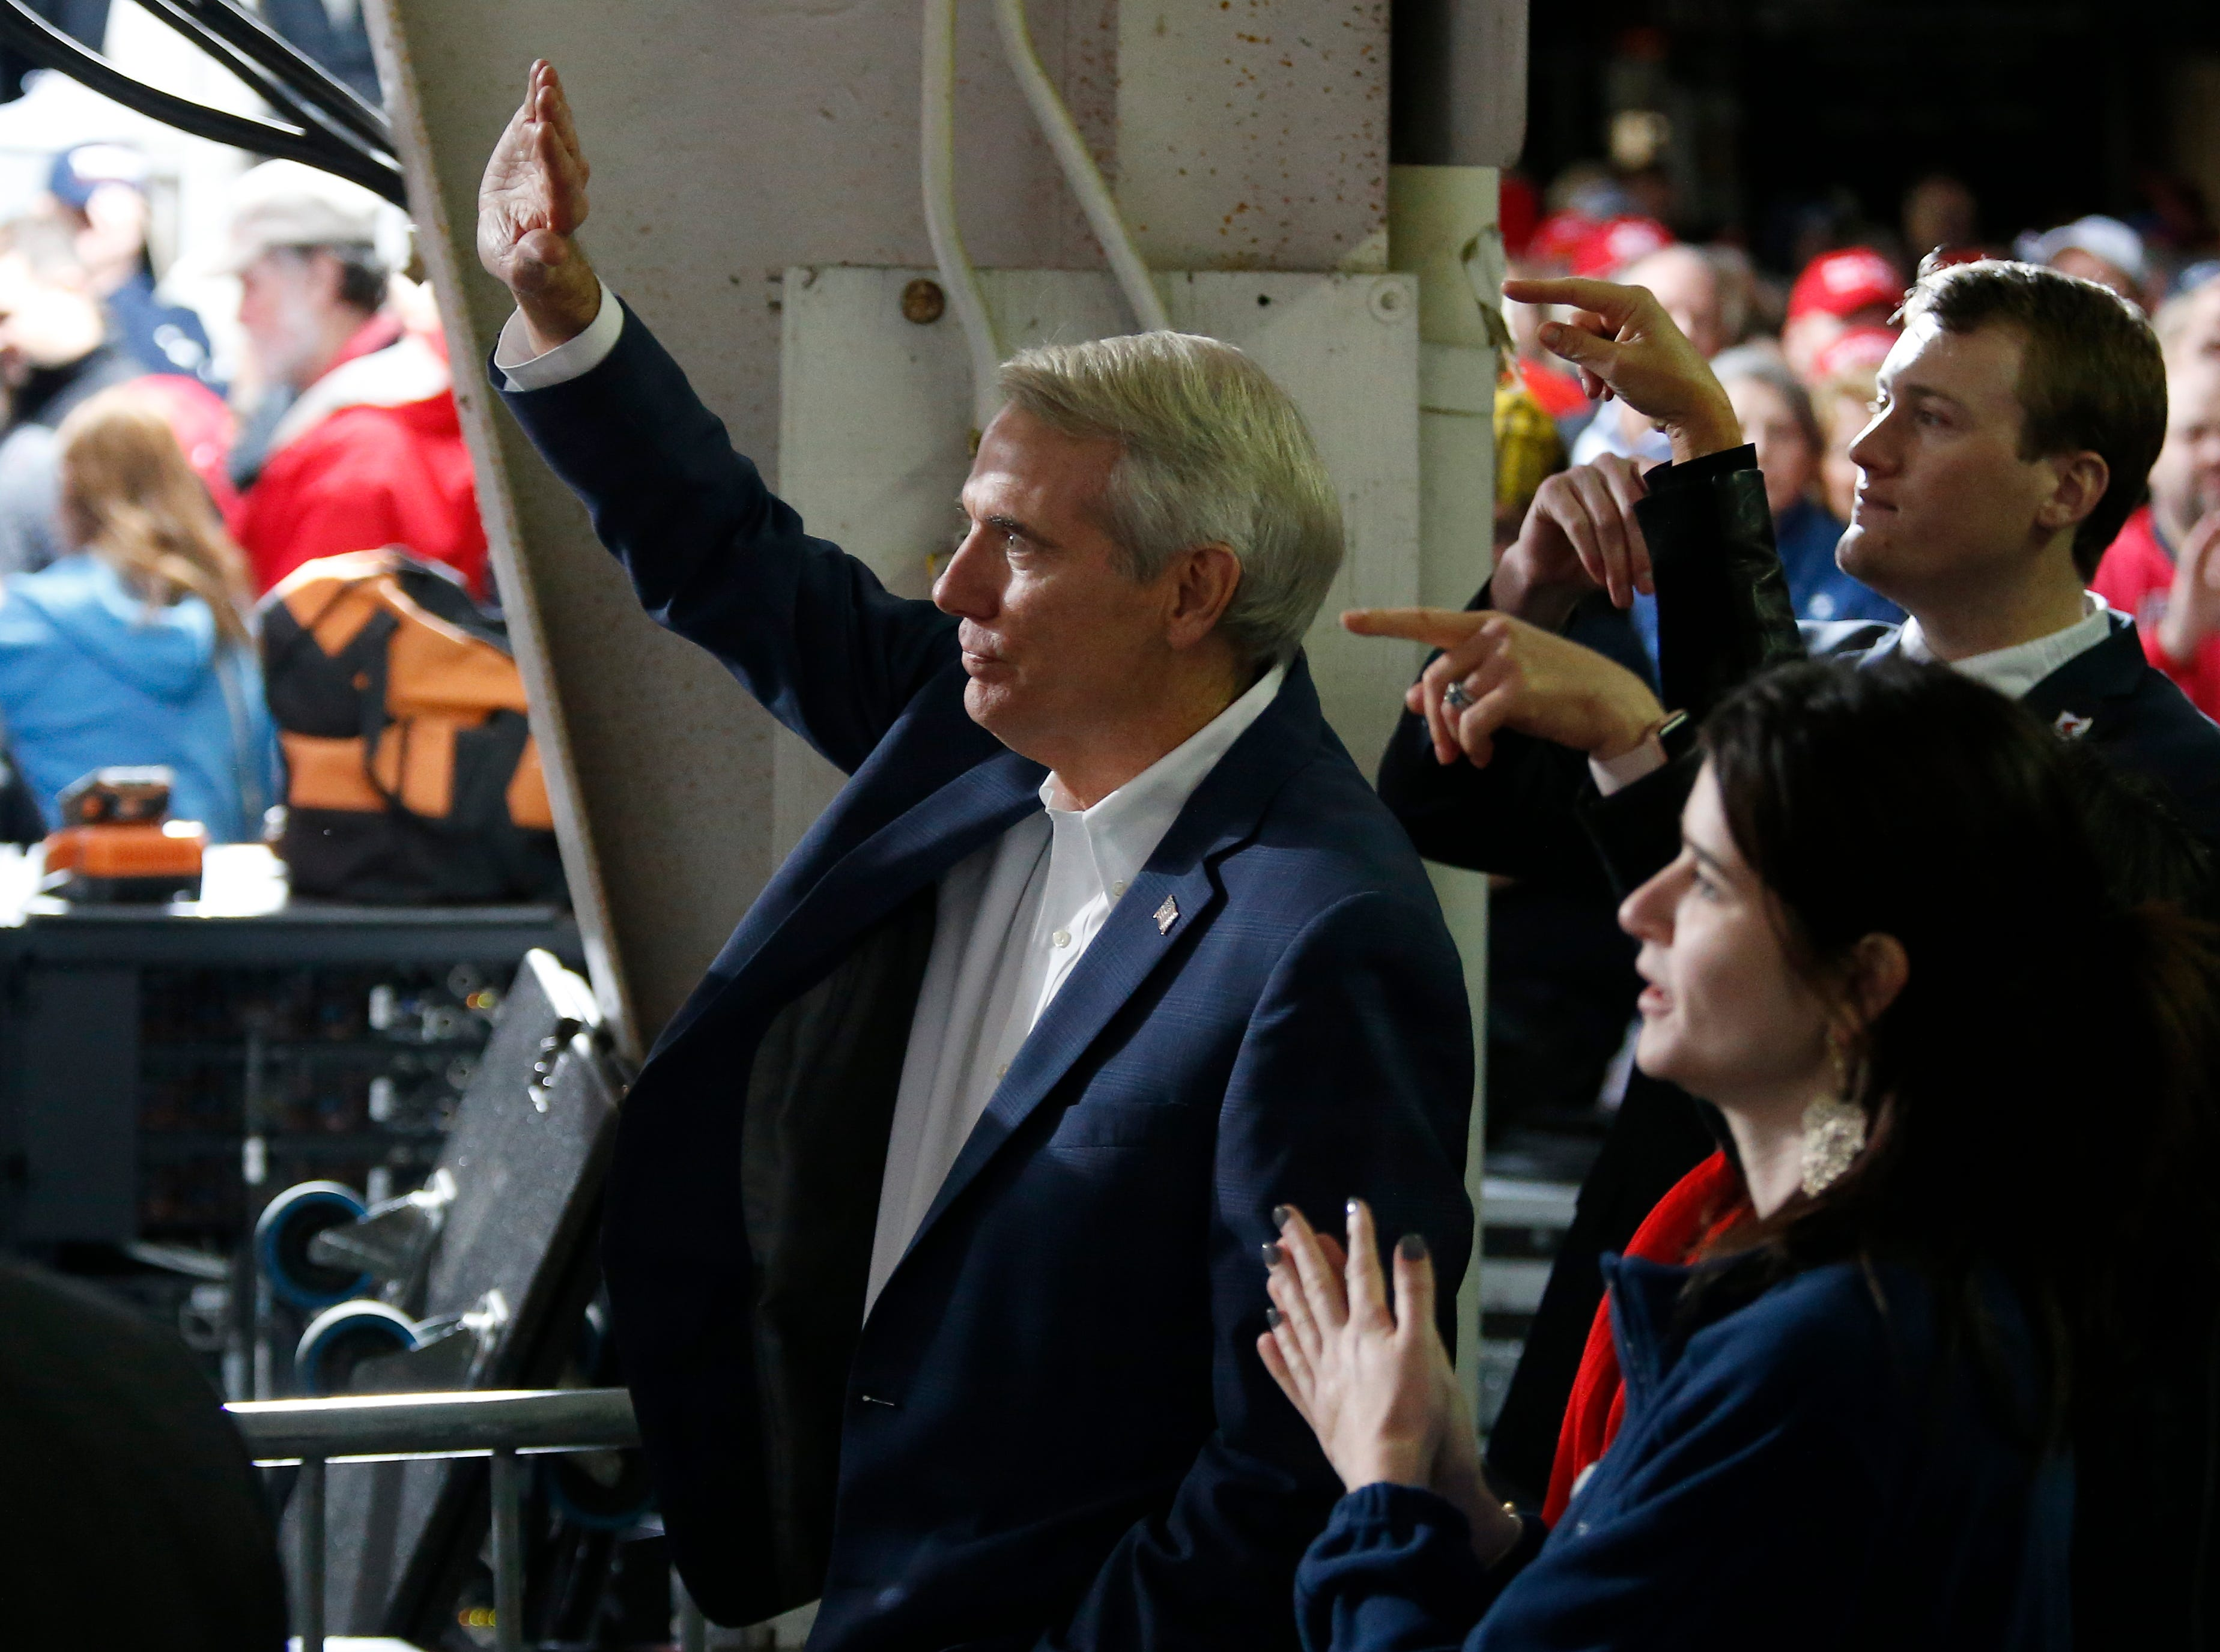 Ohio Senator Rob Portman waves as President Donald Trump points his way during a Make America Great Again rally at the warren County Fair Grounds in Lebanon, Ohio, on Friday, Oct. 12, 2018.